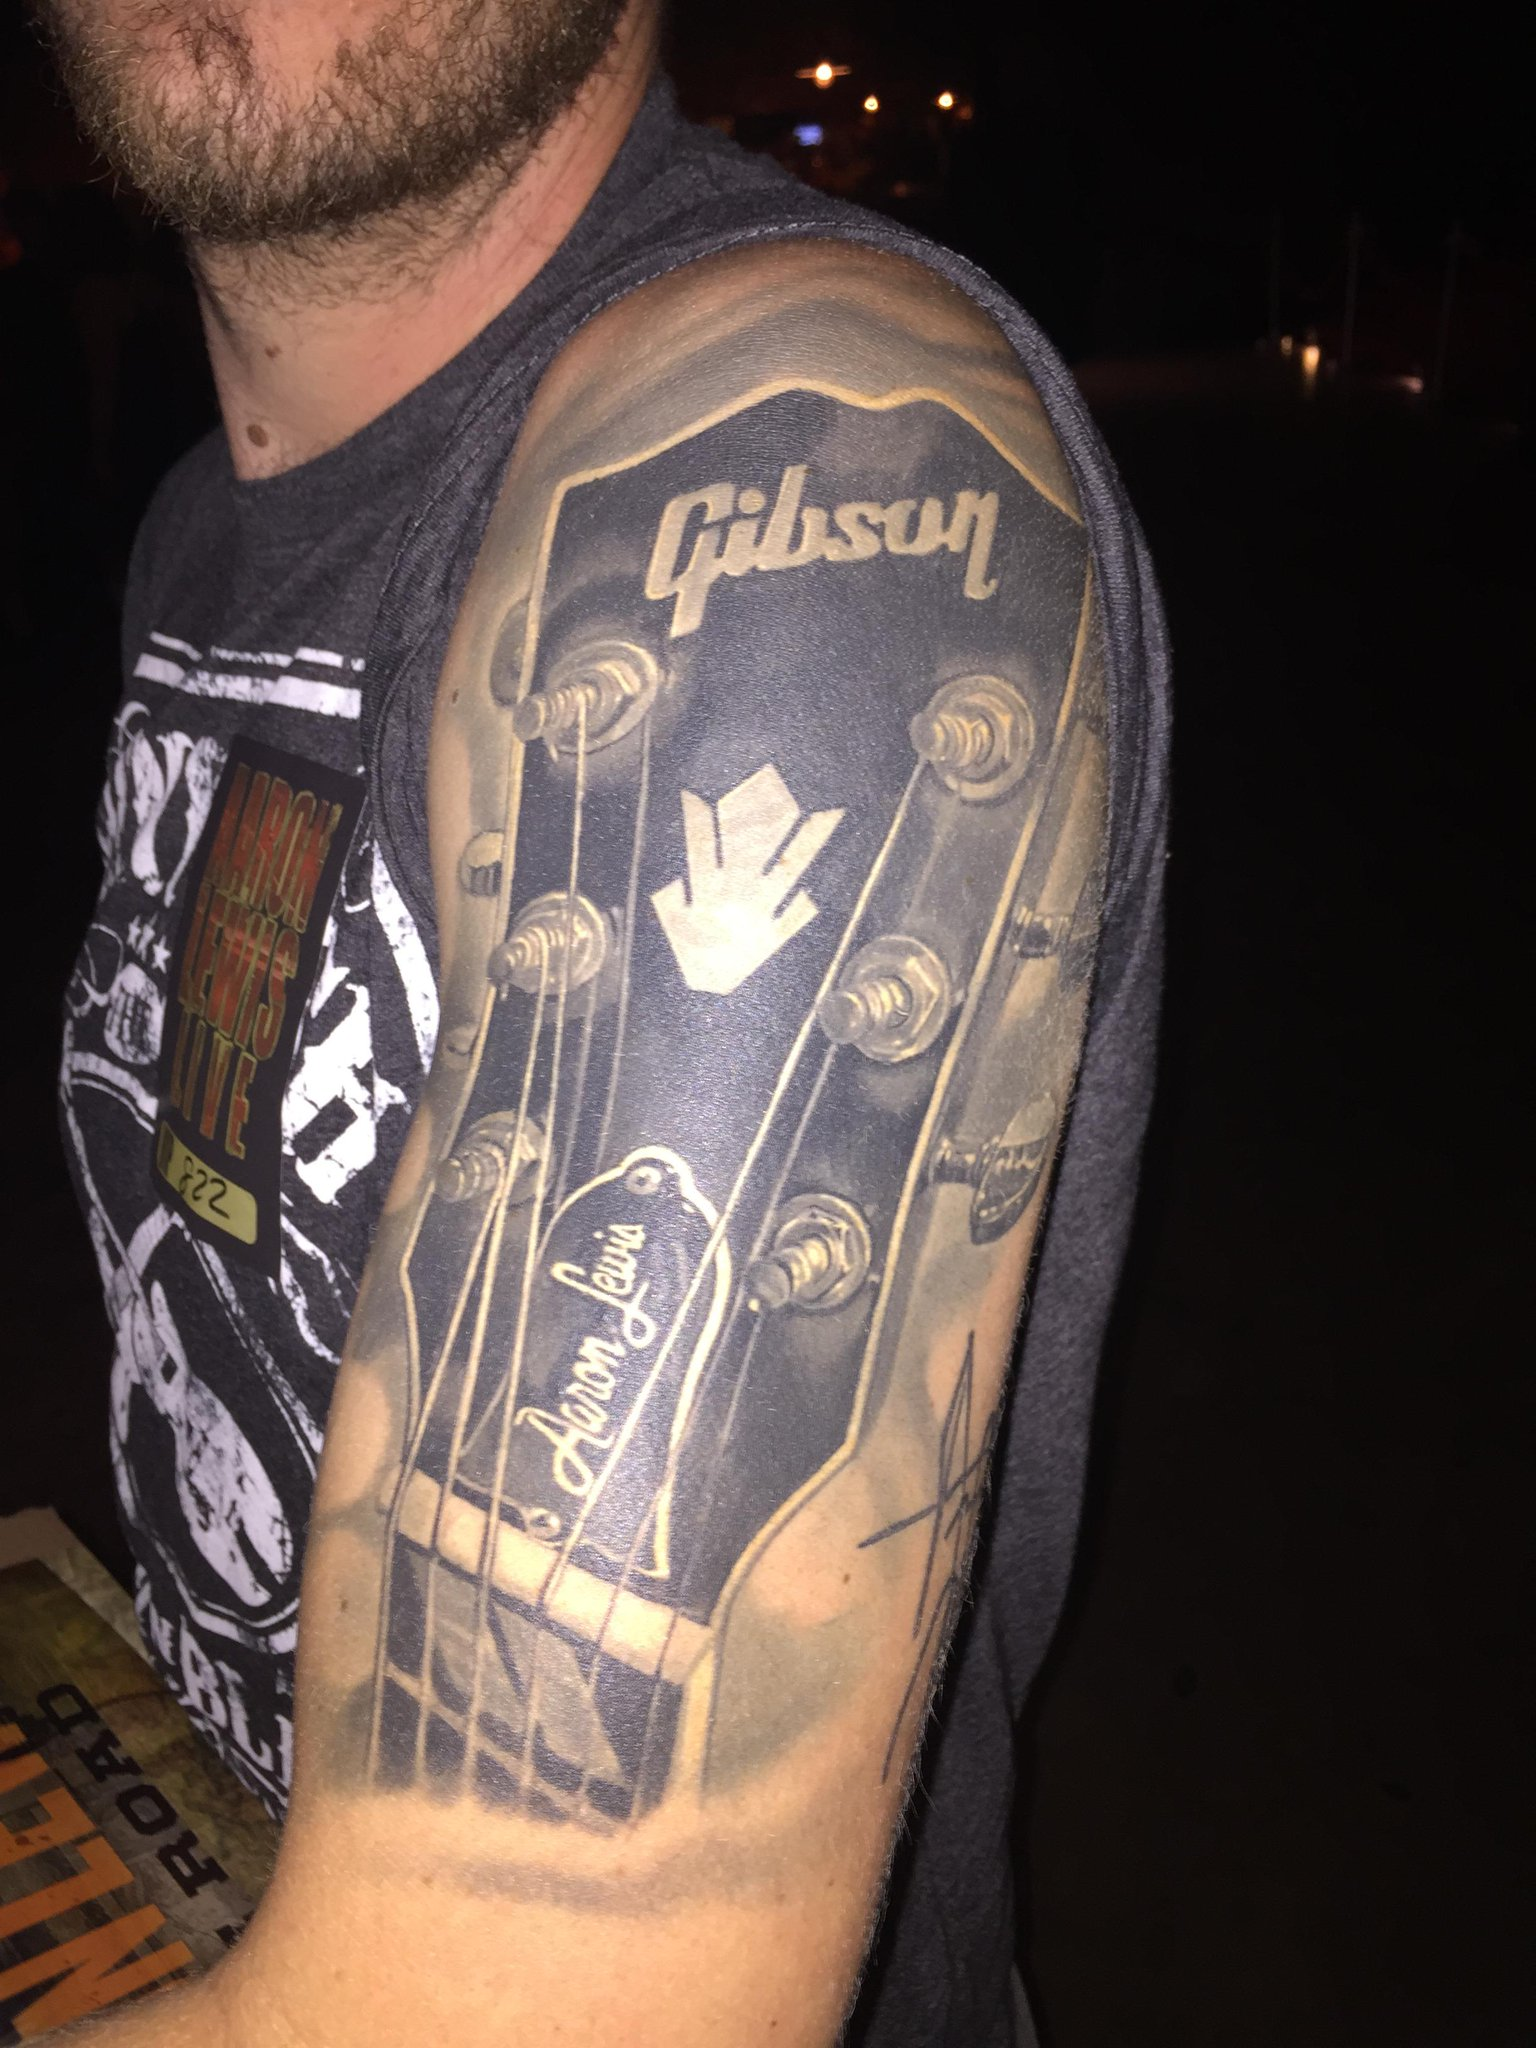 Aaron Lewis On Twitter Awesome Fan Tattoo Right Here Do Ideas And Designs